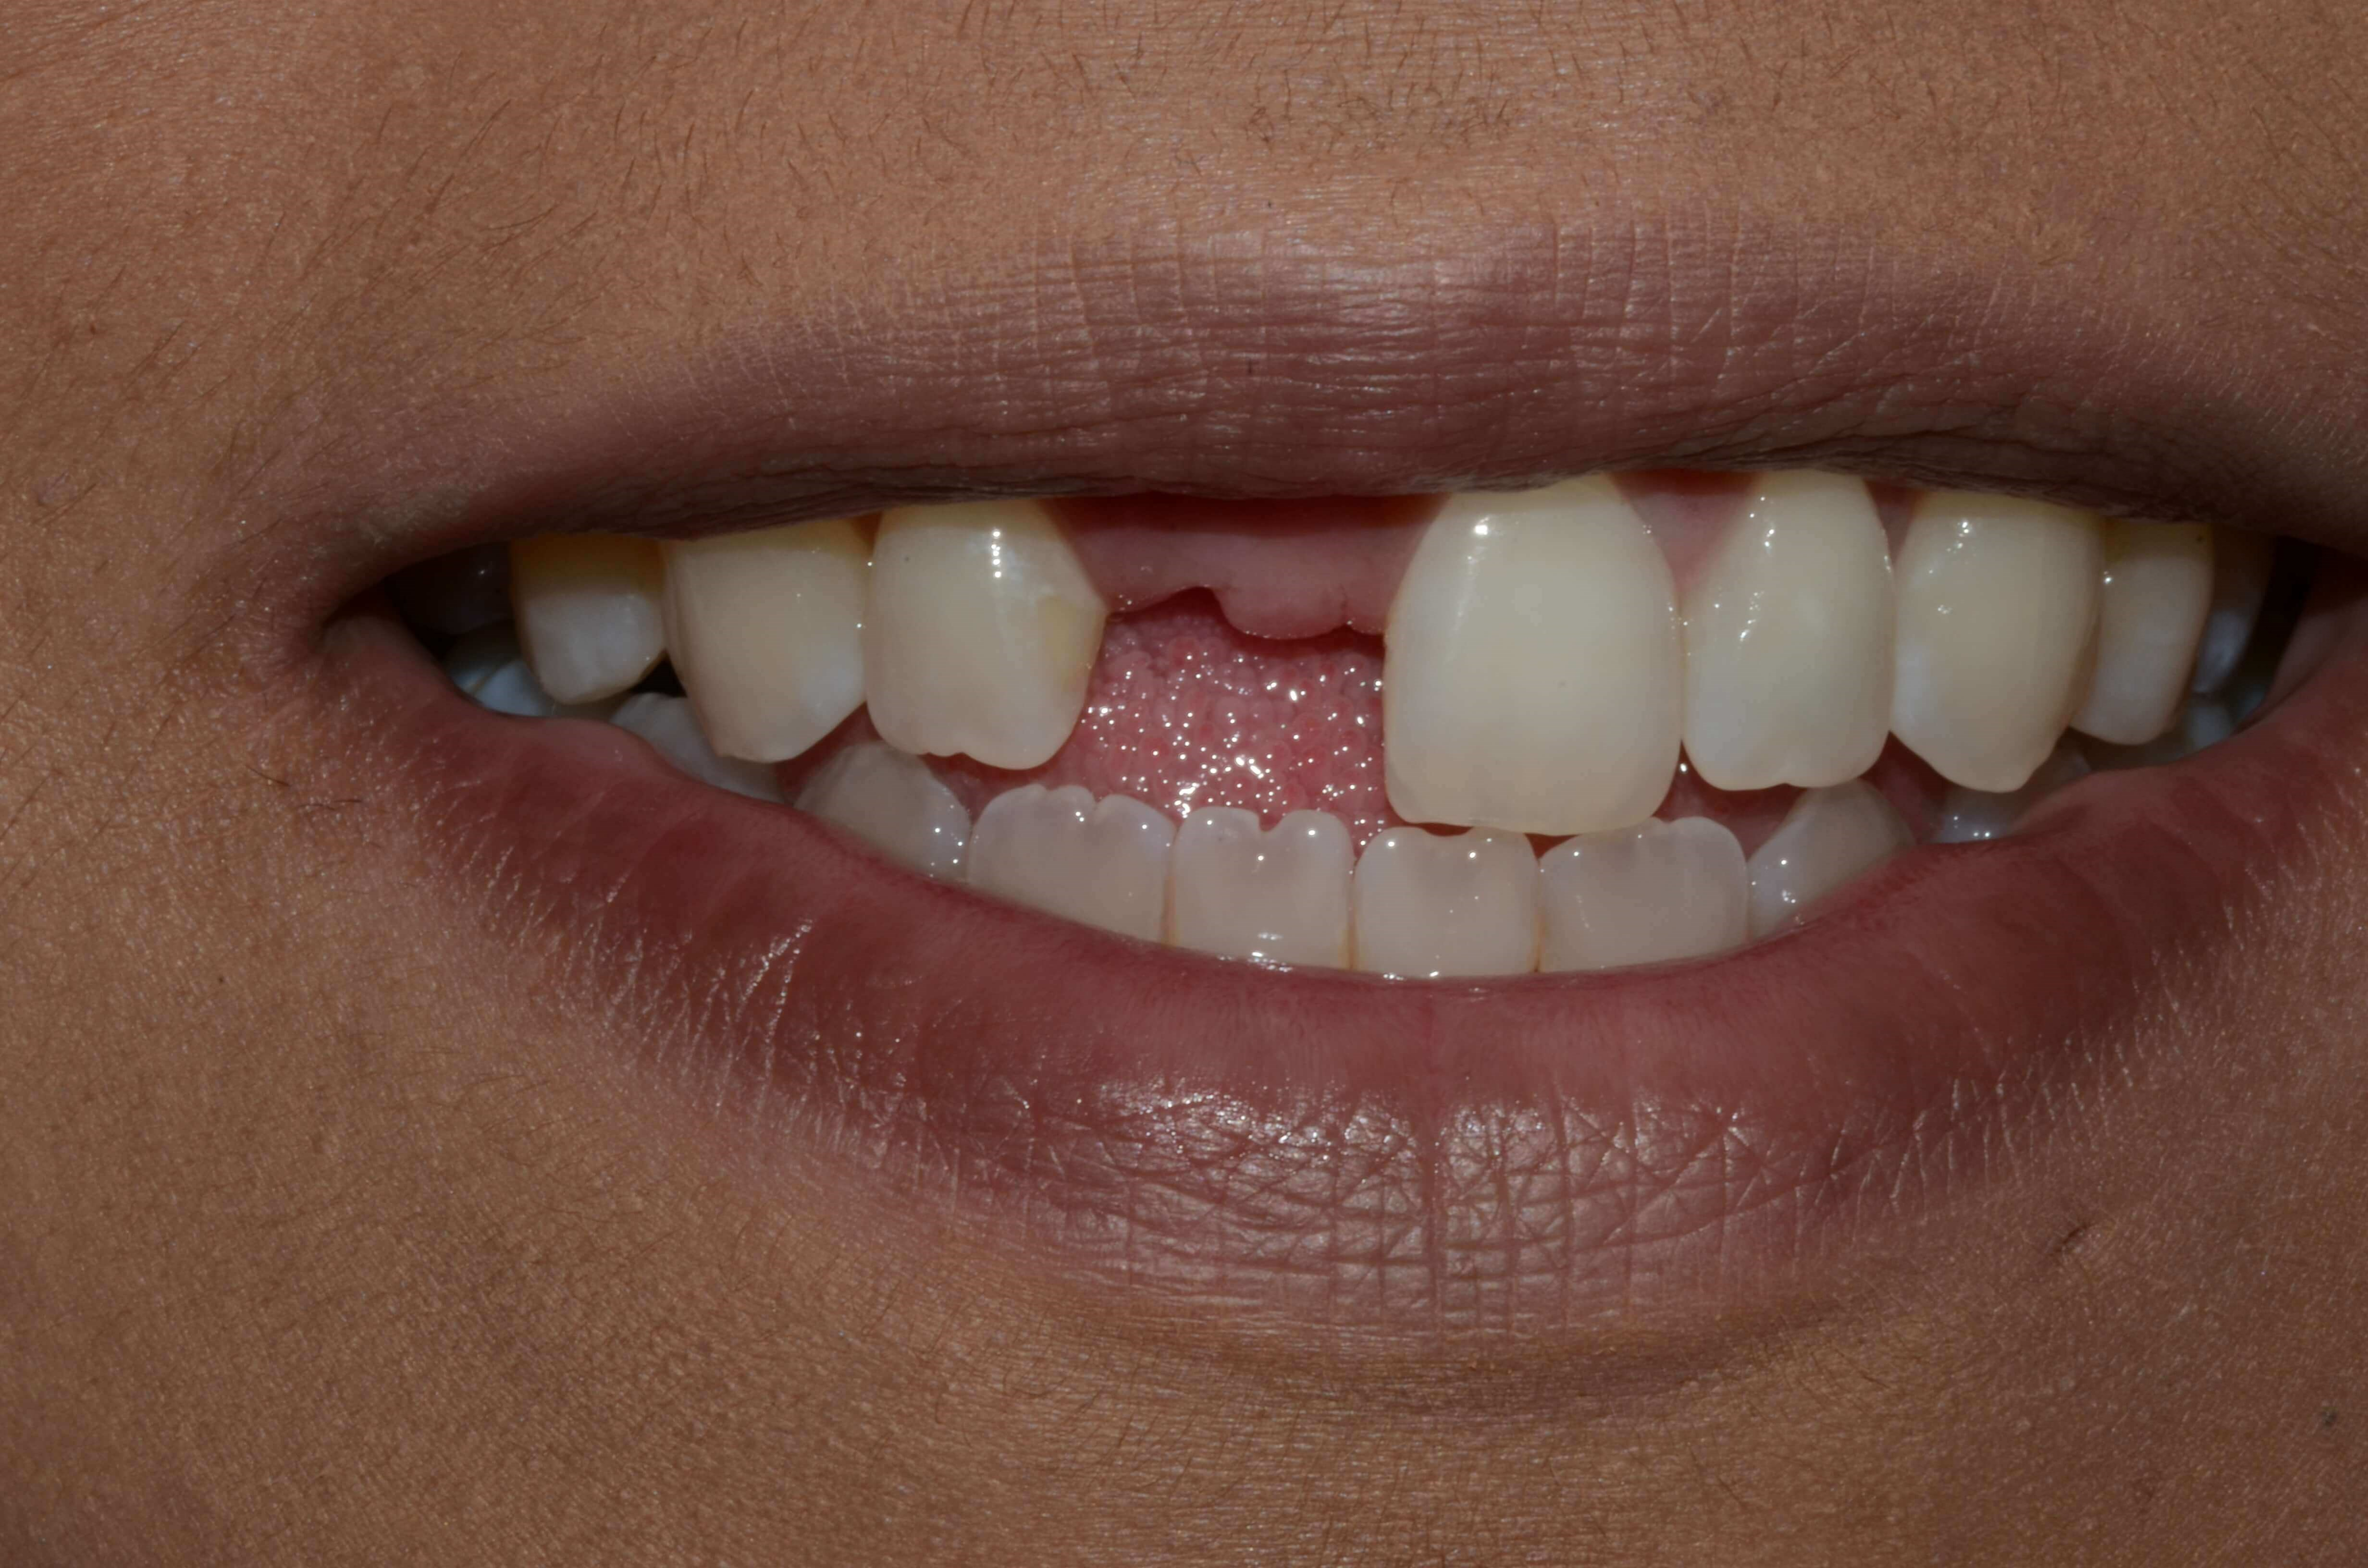 Tricities cosmetic dentist replaces missing front tooth with